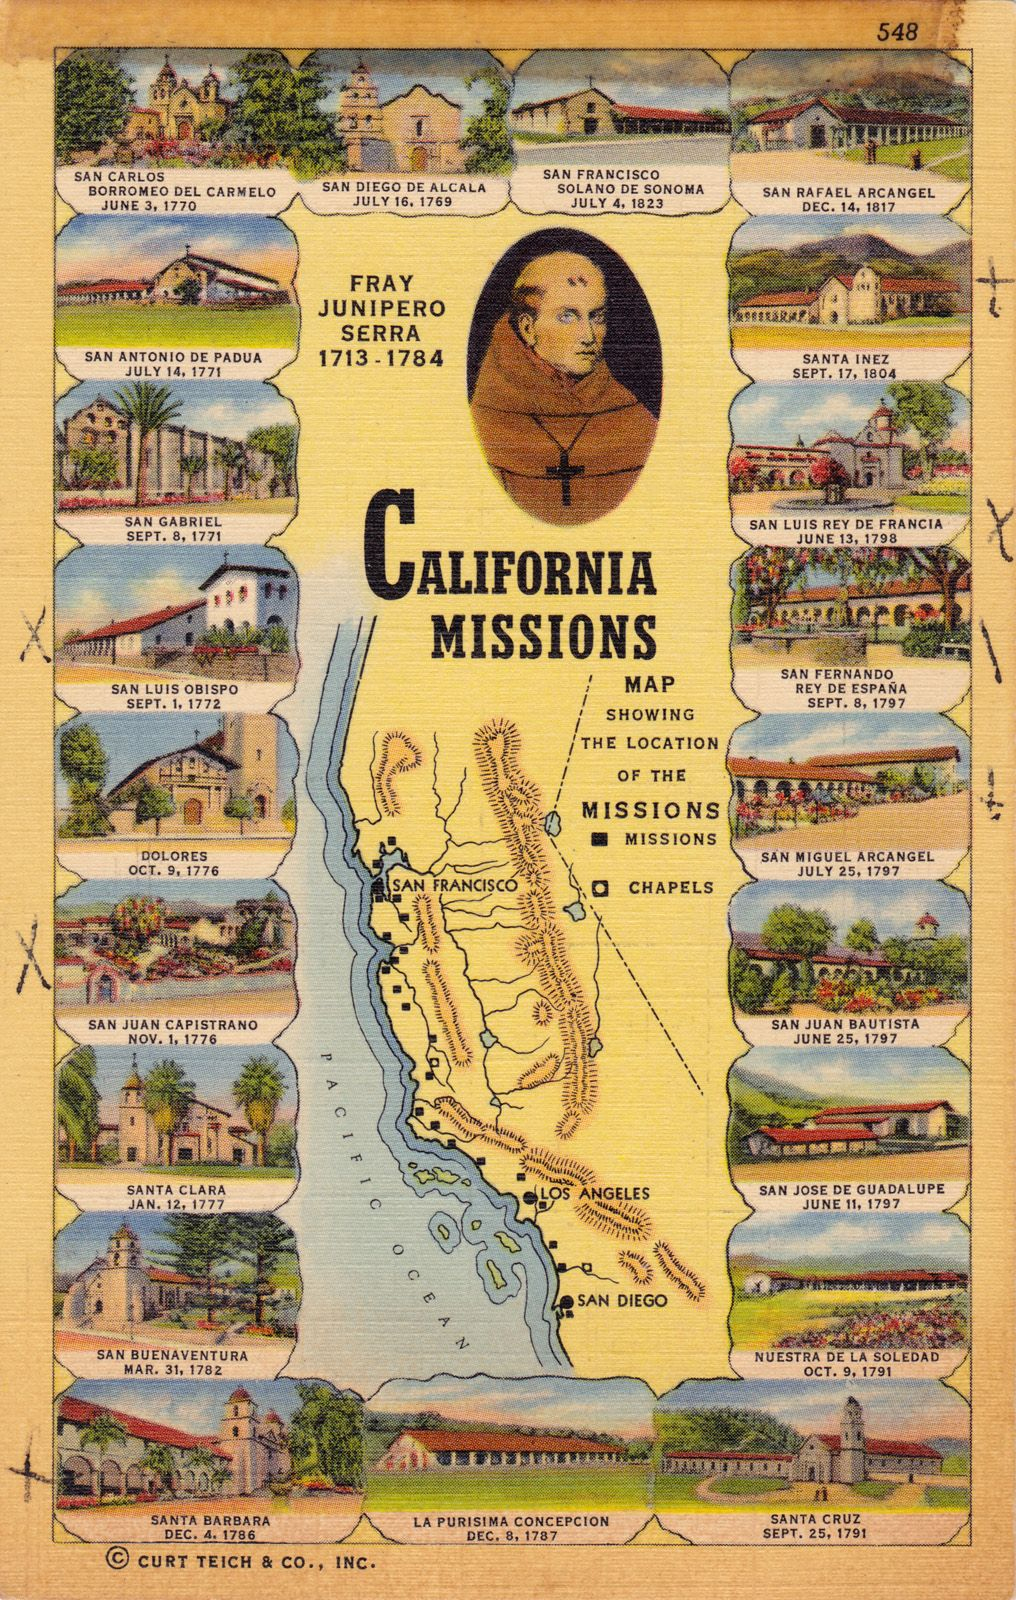 California Missions | Bay Area | Pinterest | California Missions - Southern California Missions Map